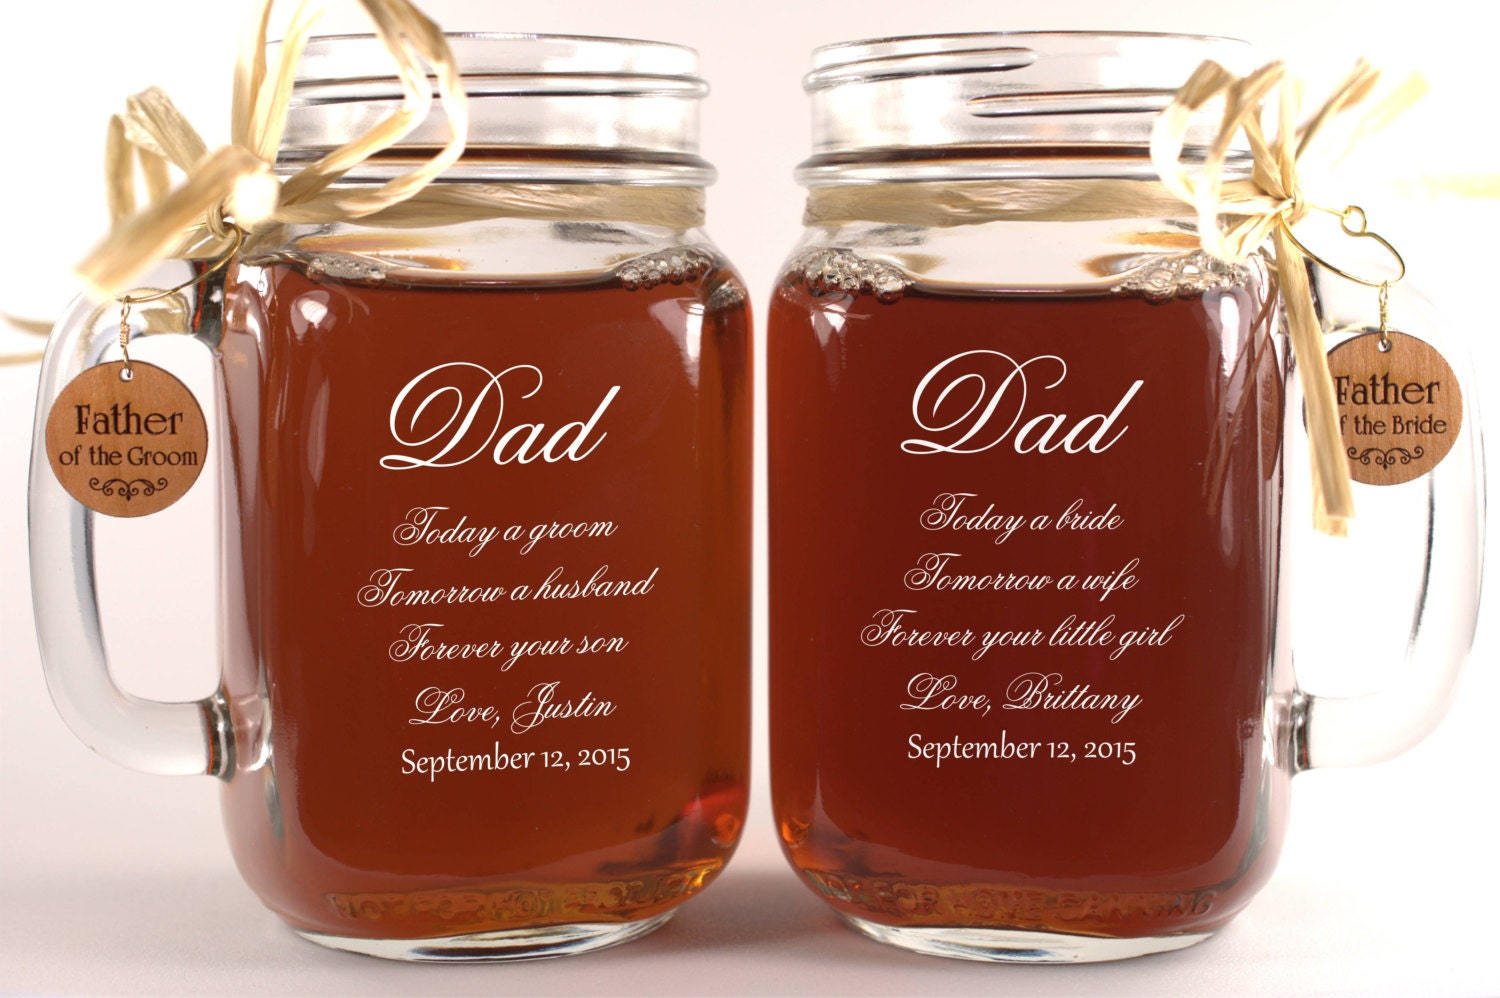 Engraved Wedding Gifts Bride Groom : Dad Wedding Gift Mason Jars Father of the Groom Gift Father